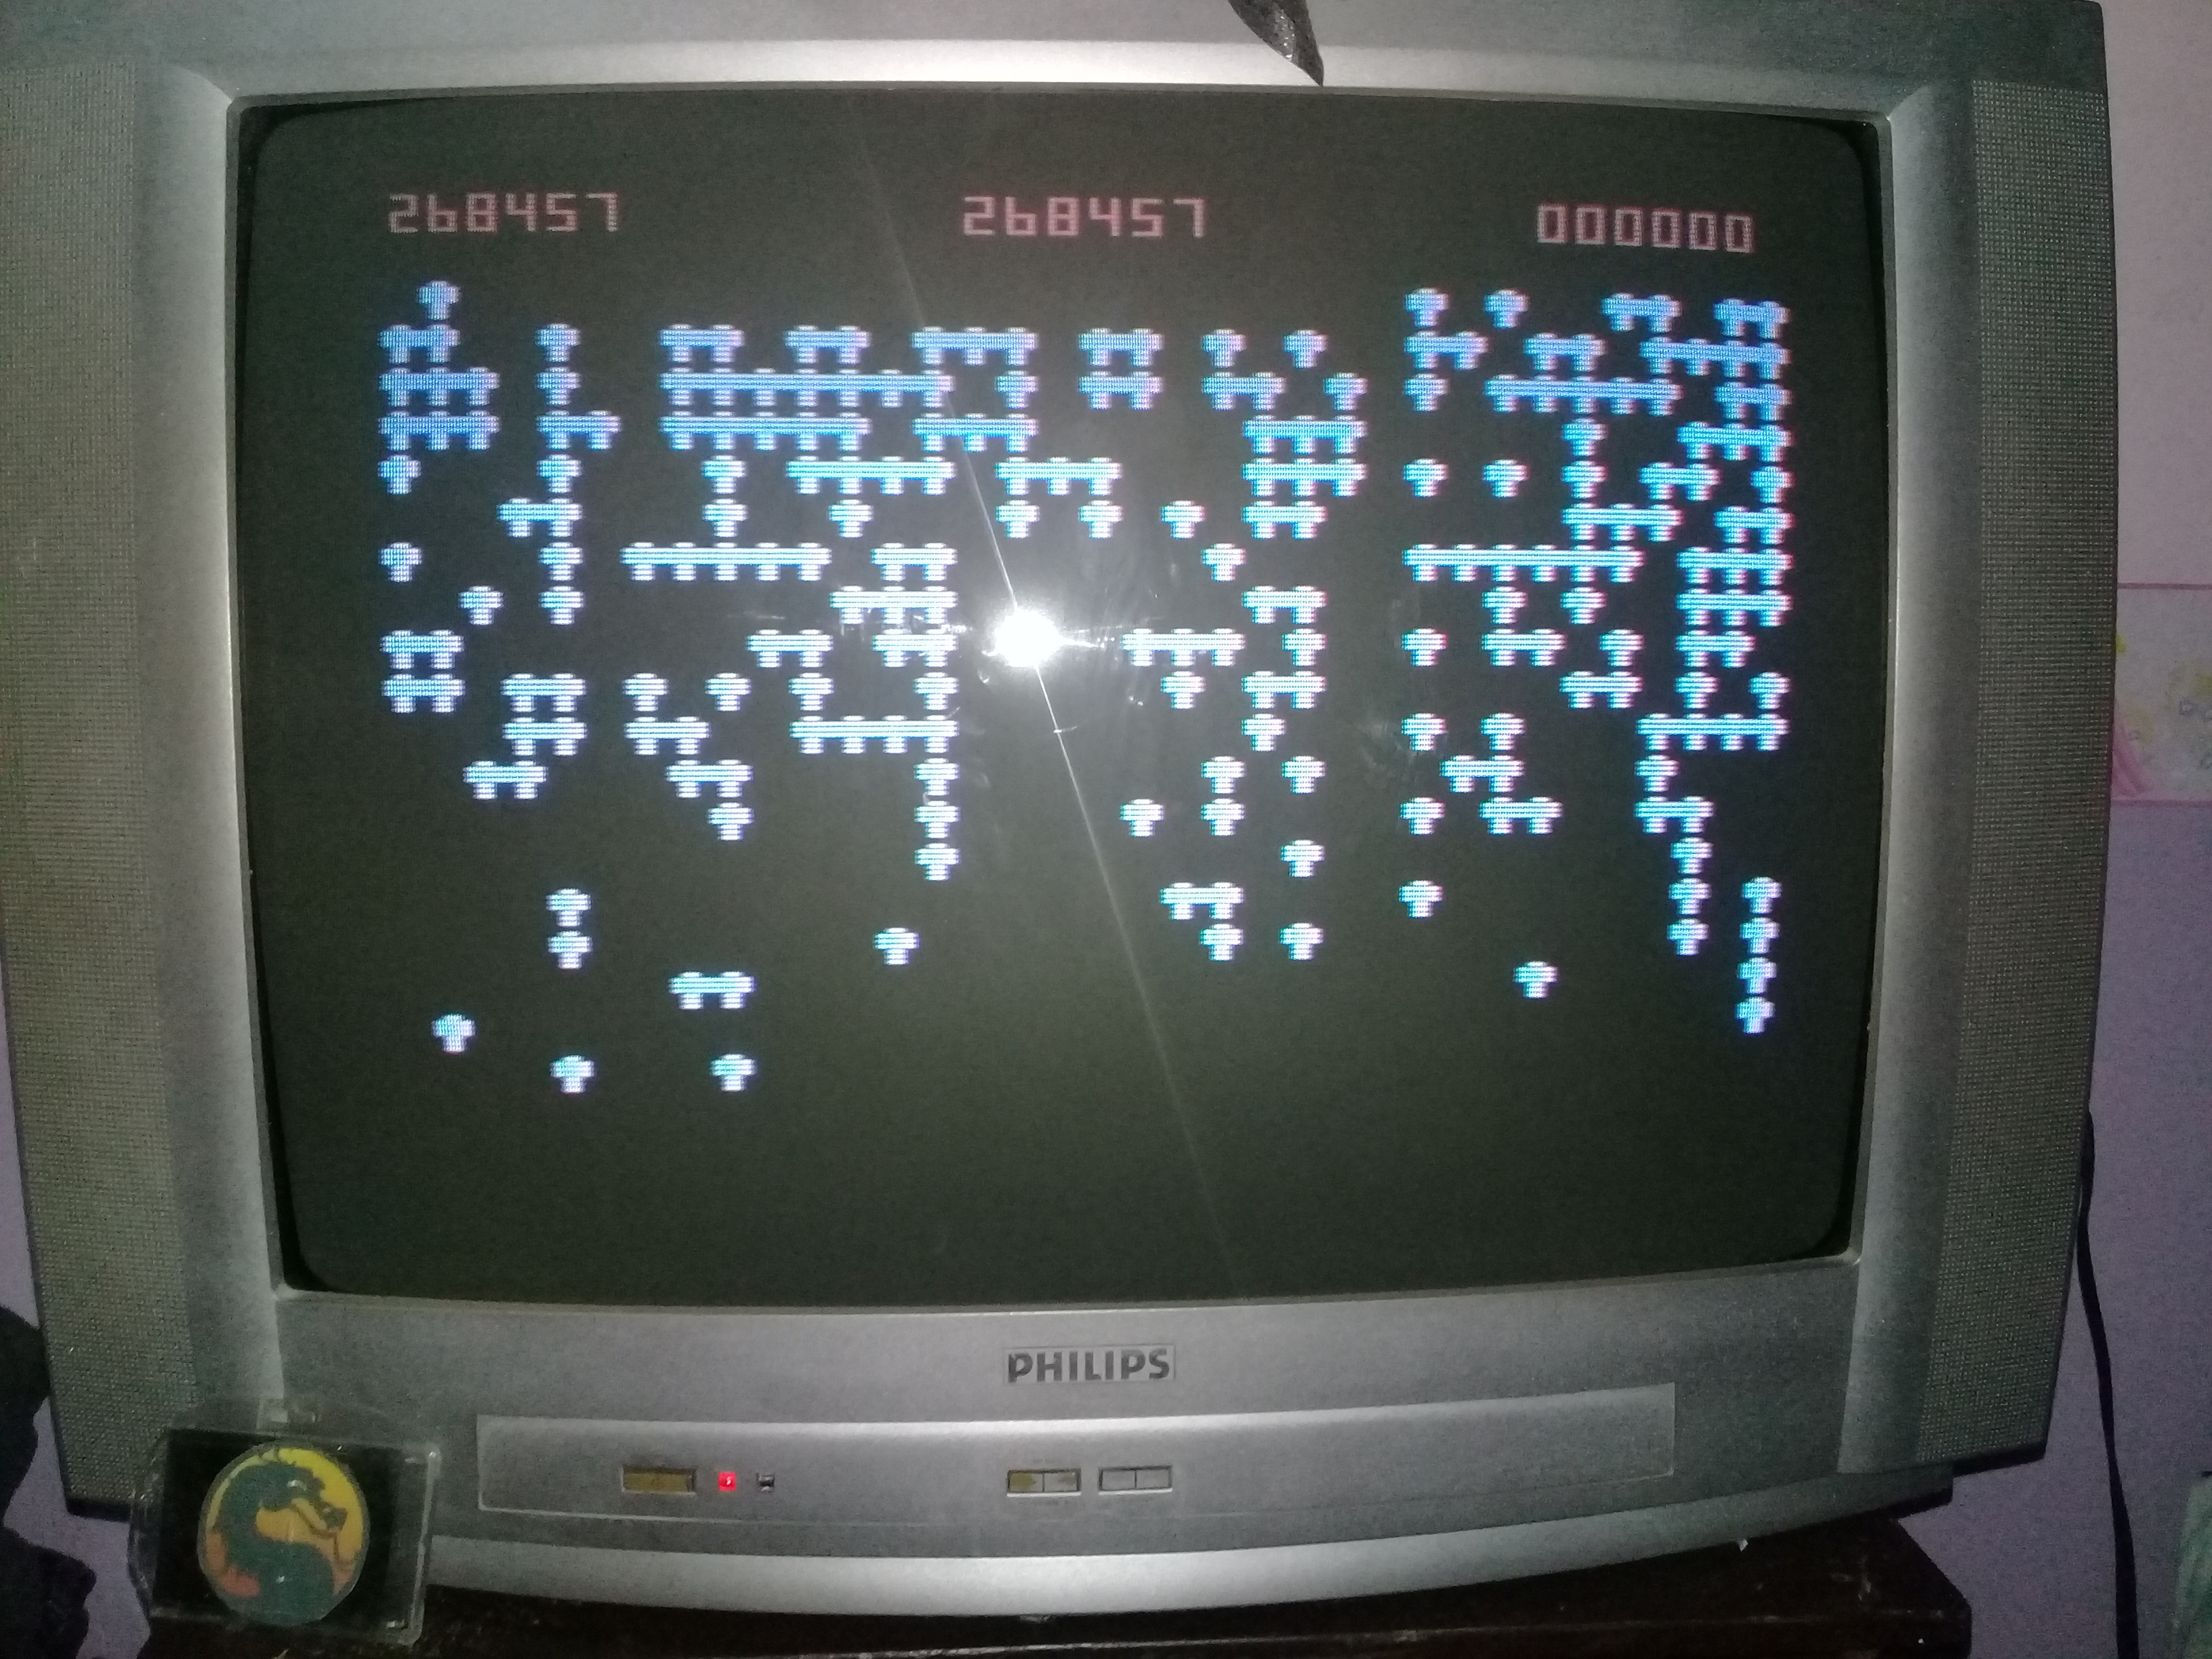 omargeddon: Centipede (Atari 400/800/XL/XE) 268,457 points on 2020-03-19 02:12:50